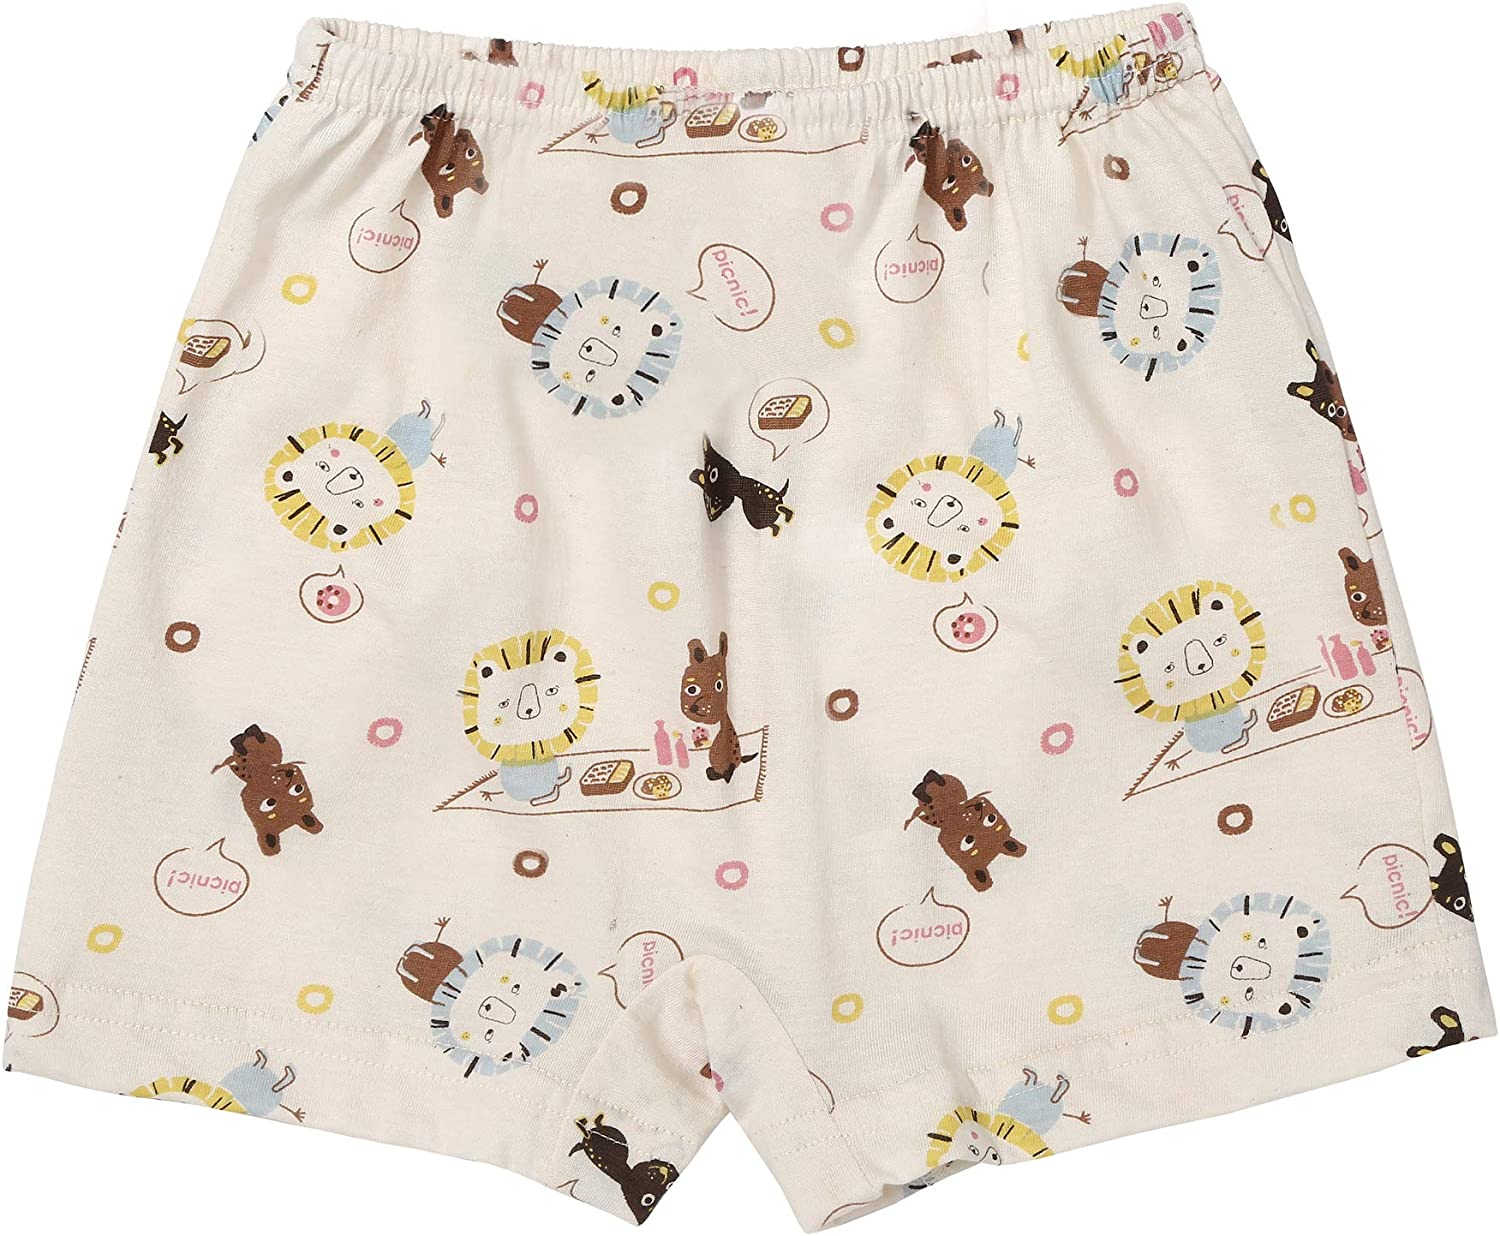 WithOrganic Boxer Shorts Underwear for Boys and Girls - 100% Certified Organic Cotton